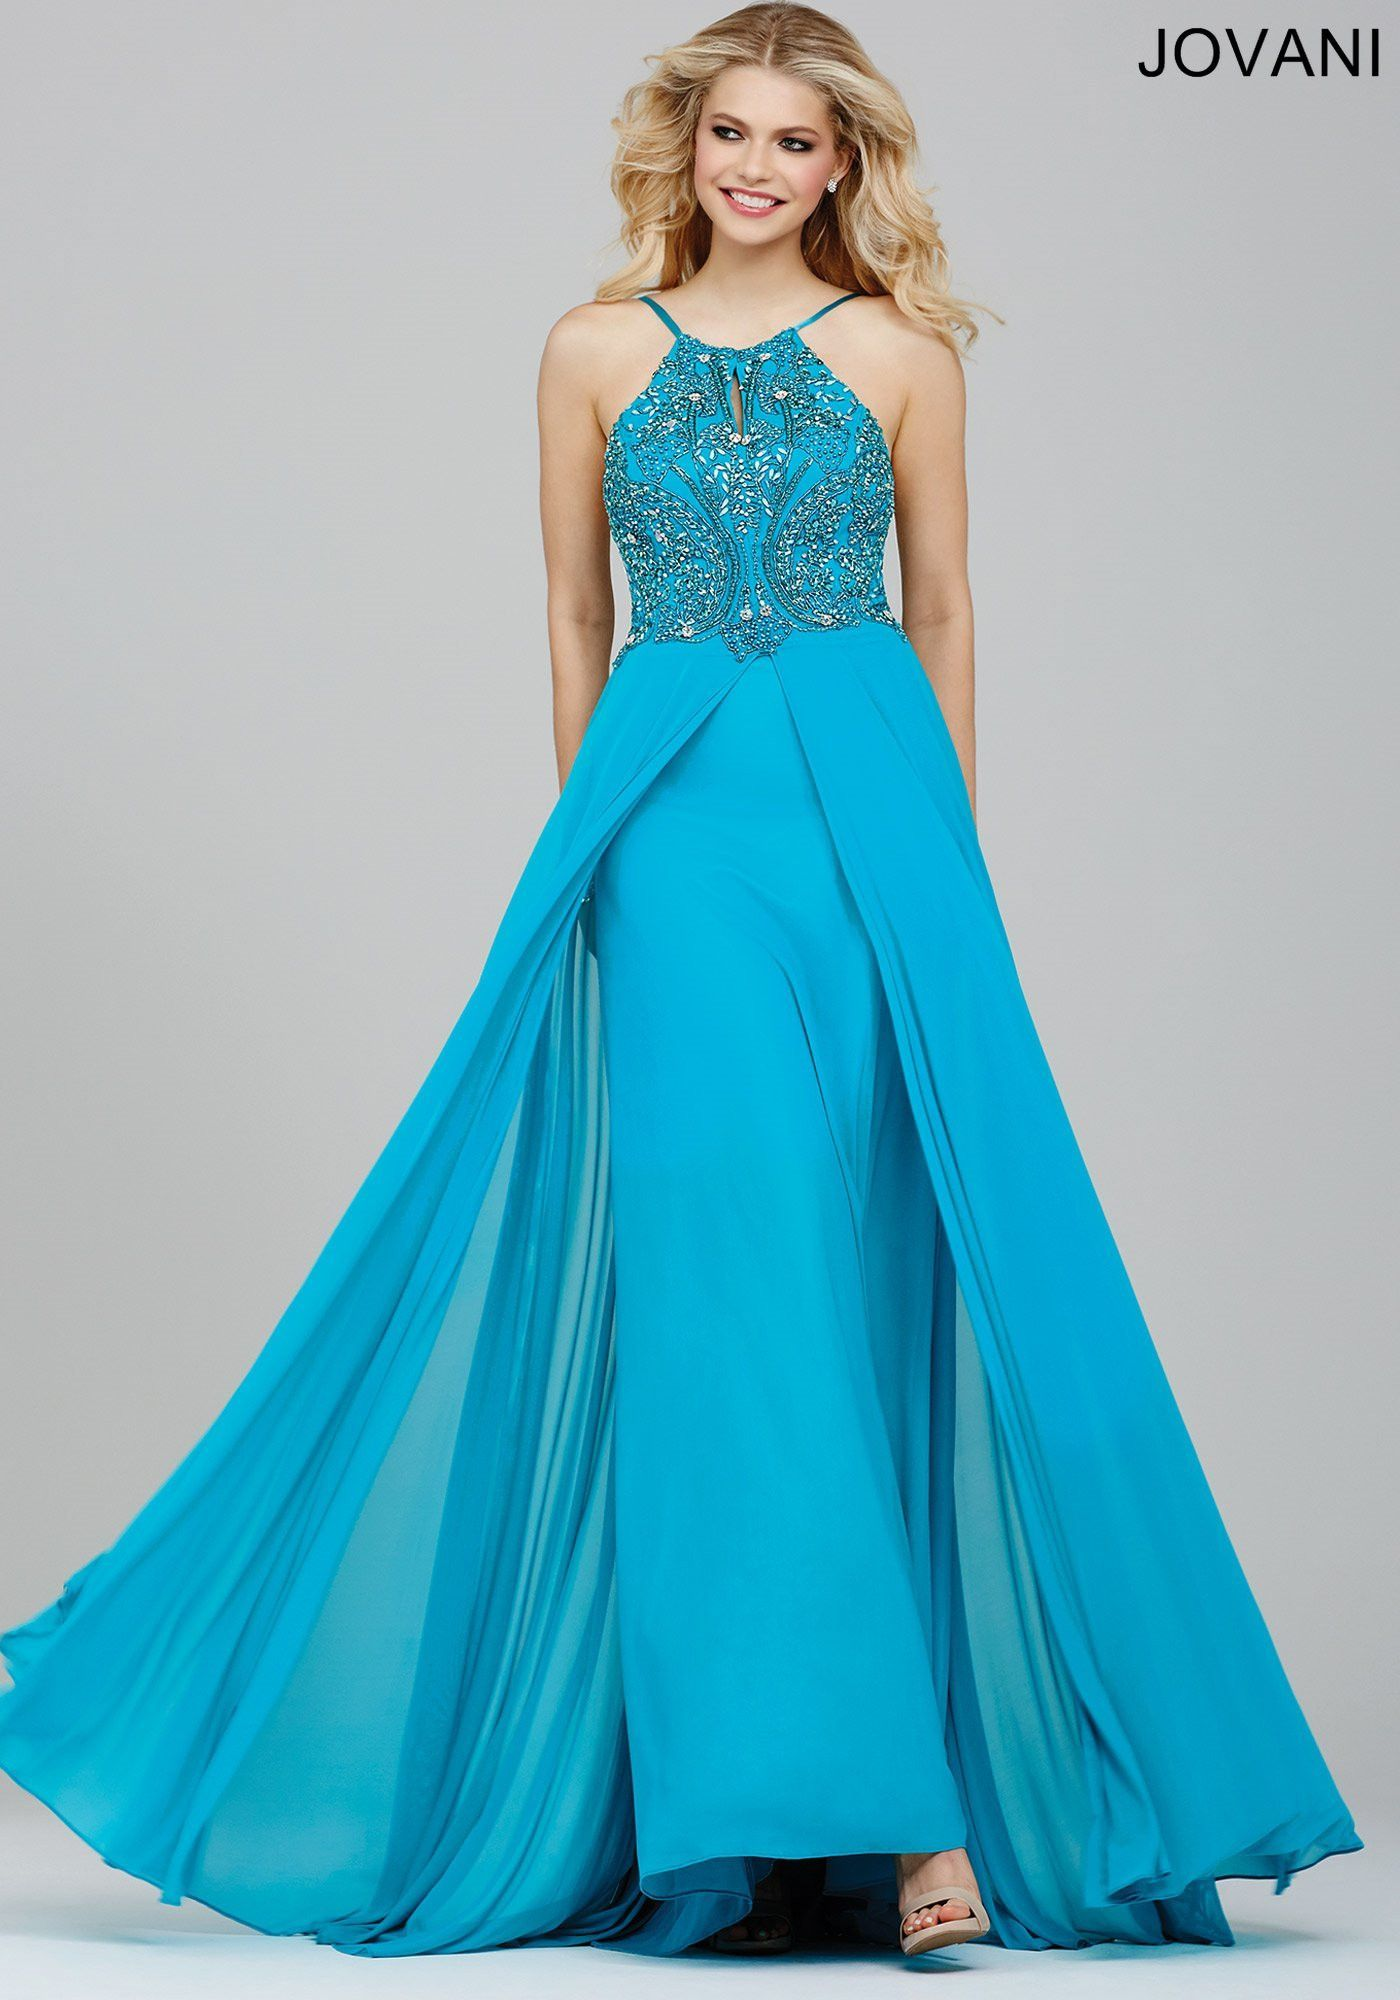 Jovani 24377 In Stock Turquoise Size 2 Prom Pageant Dress | Pageants ...